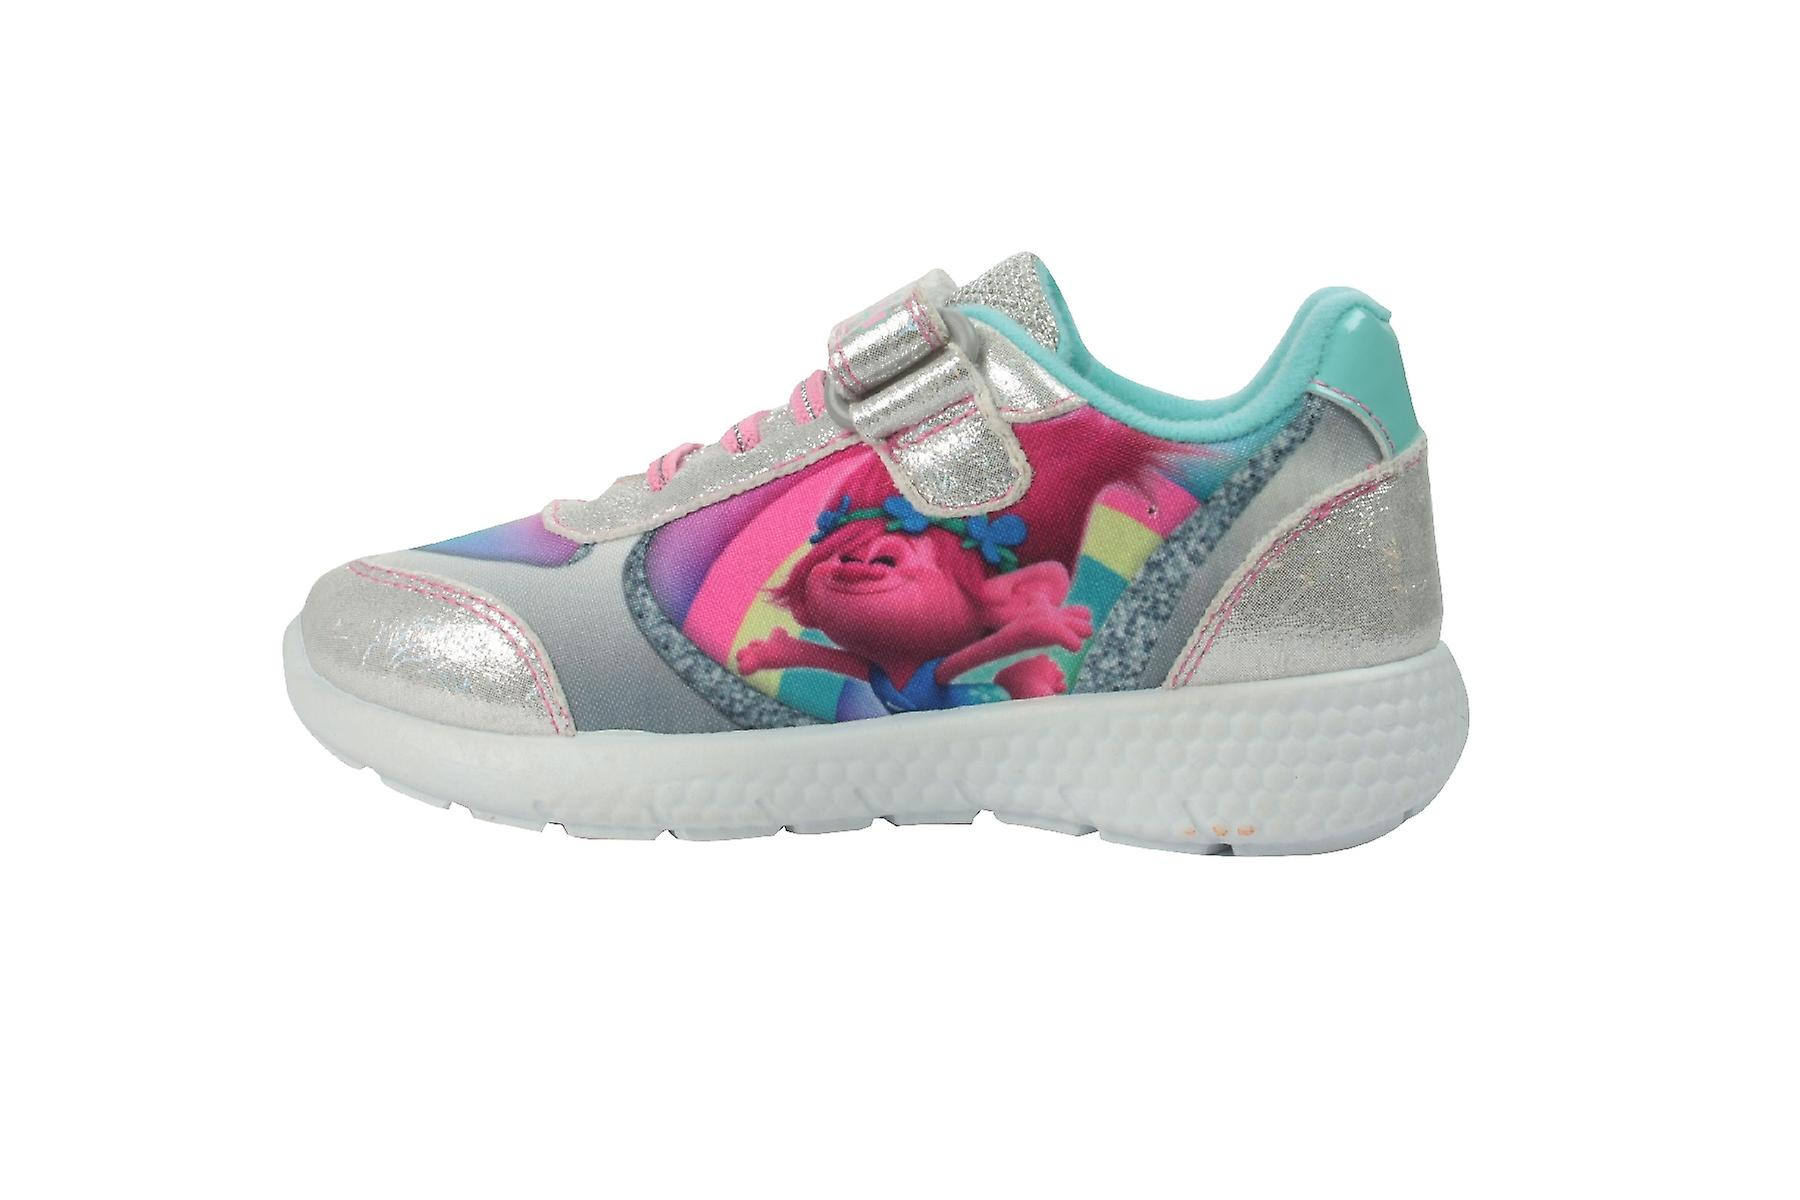 Girls Trolls Silver Glitter Sports & Canvas Trainers Shoes Hook & Sports Loop UK Sizes 6 - 12 4875cf